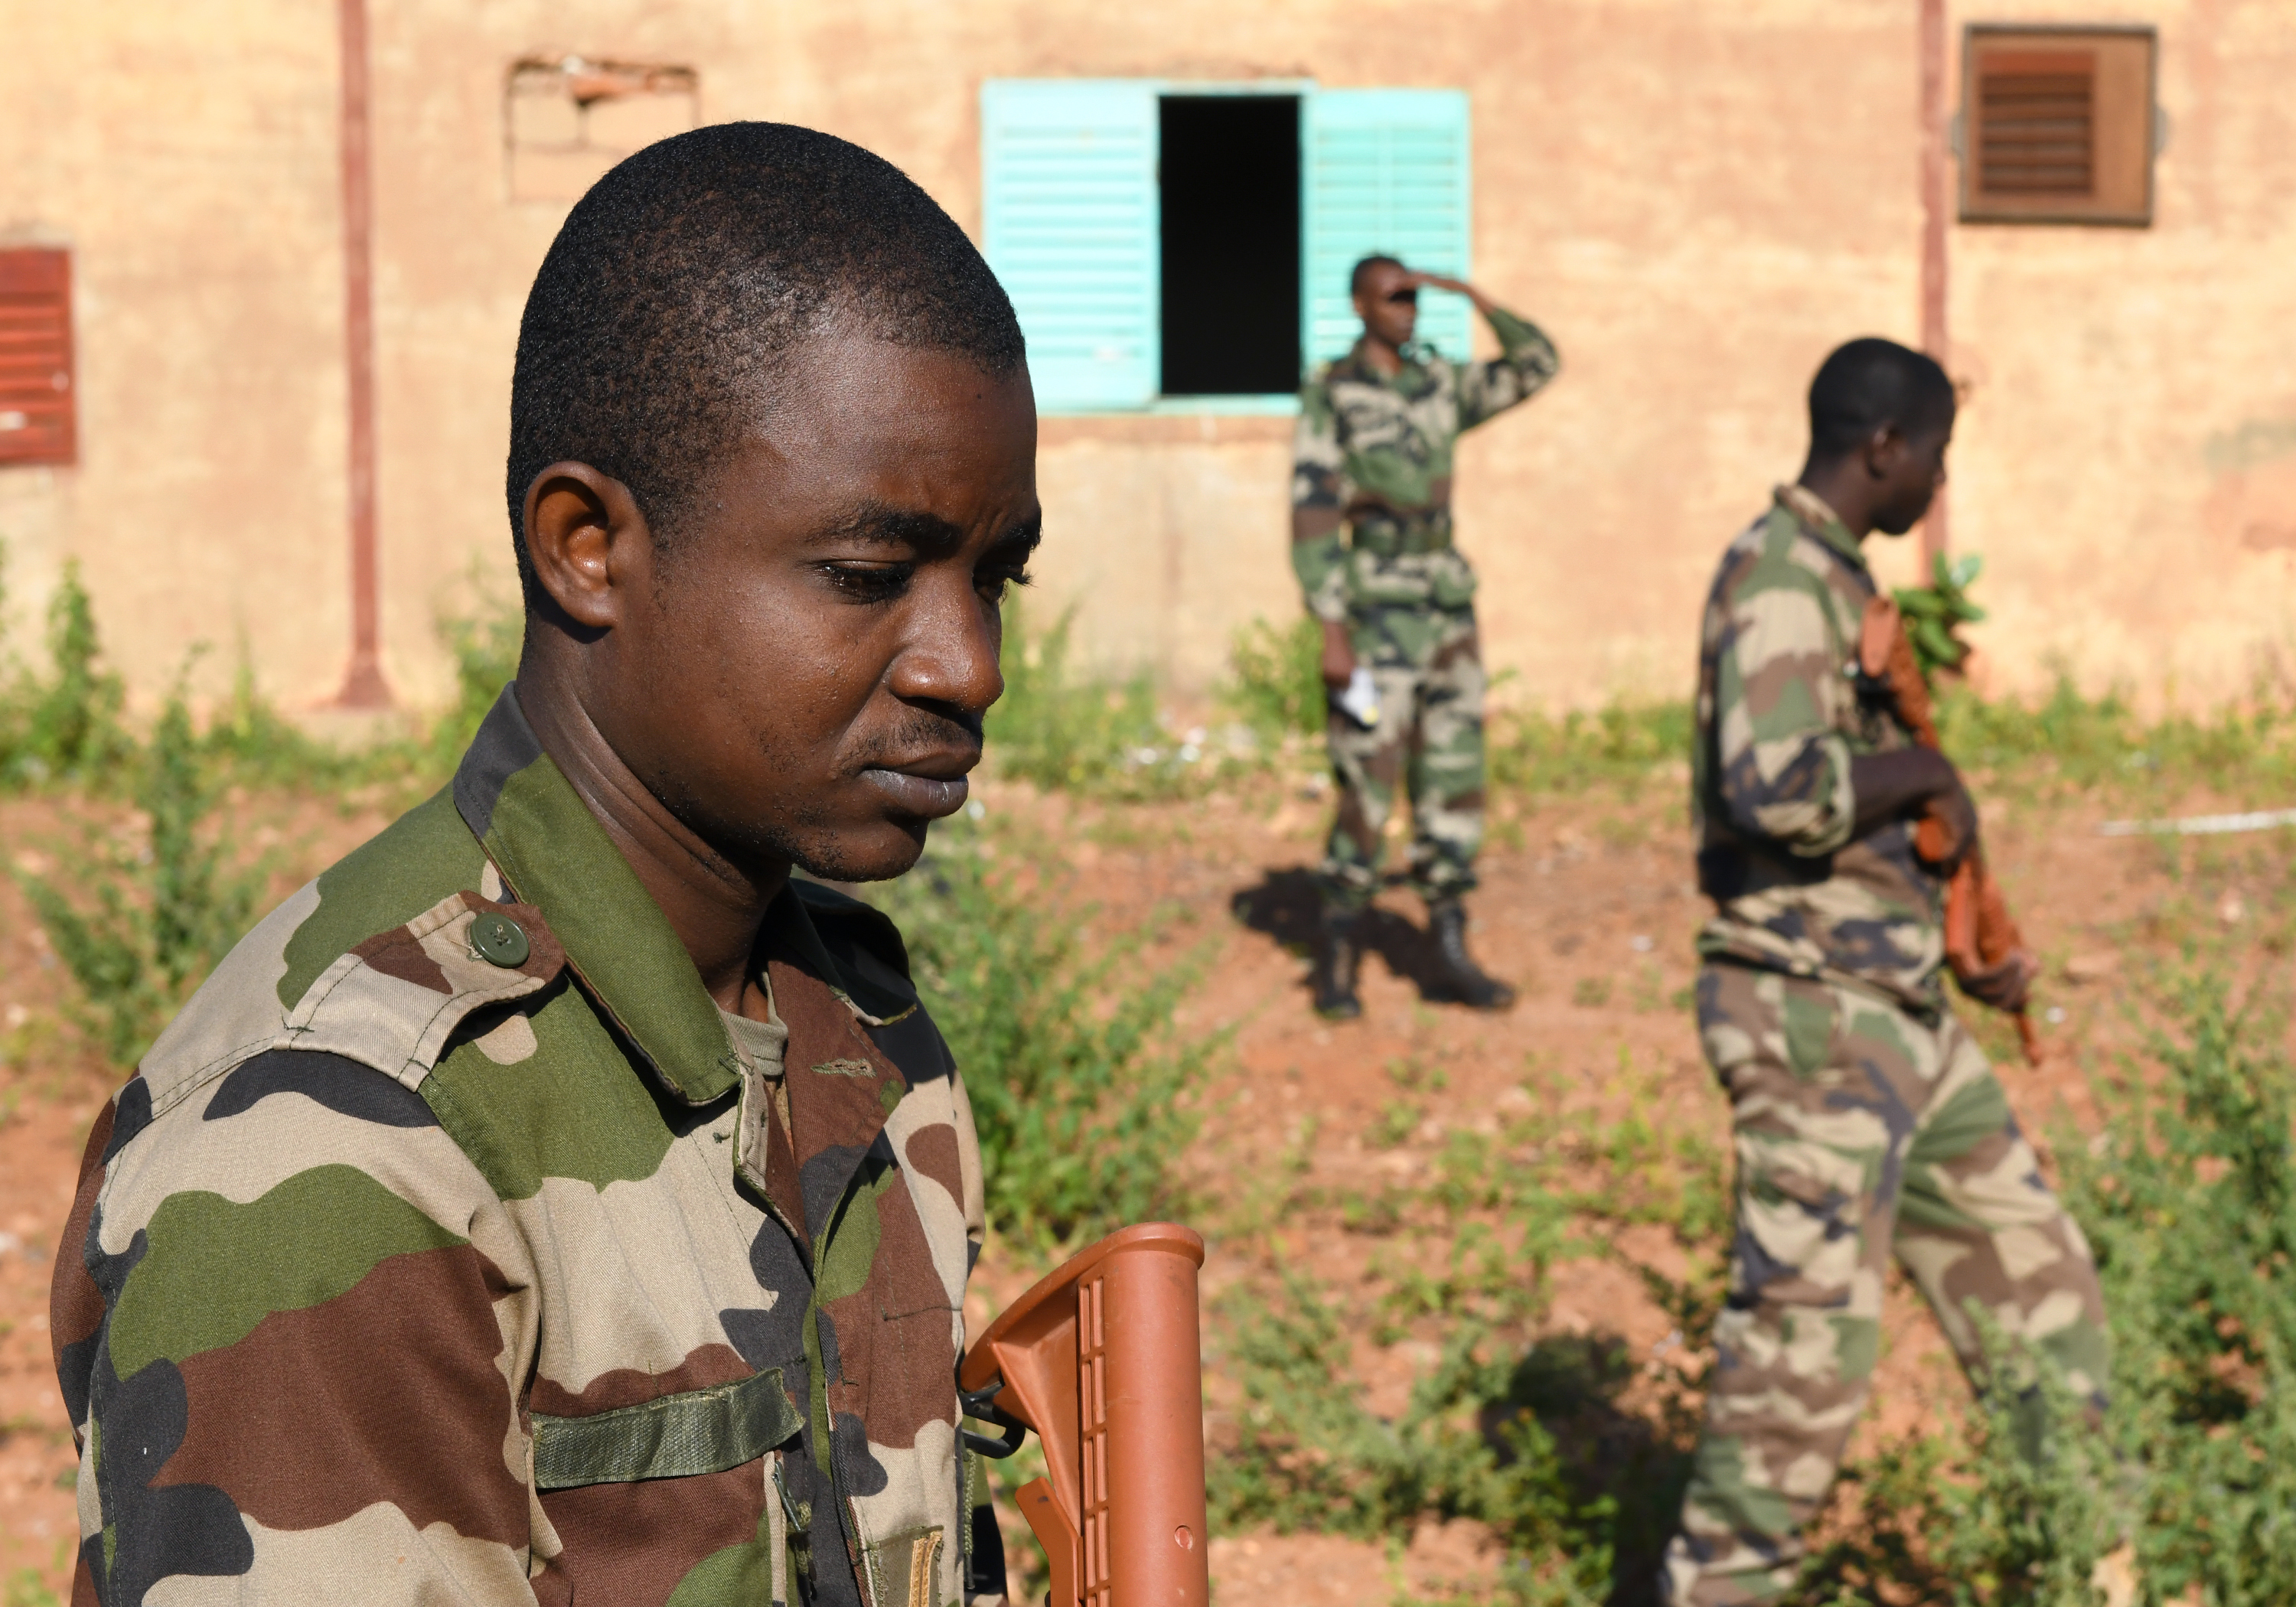 Forces Armées Nigeriennes (Nigerien Armed Forces) Genie Unit members search for improvised explosive devices during an IED Awareness Course in Niamey, Niger, Oct. 11, 2019. During the week-long course, the 768th Expeditionary Air Base Squadron Explosive Ordnance Disposal team and Security Forces Air Advisors taught FAN personnel valuable skills for the deployed environment such as how to locate and react to an IED, how to set up a cordon and the procedures to clear the area. (U.S. Air Force photo by Staff Sgt. Alex Fox Echols III)